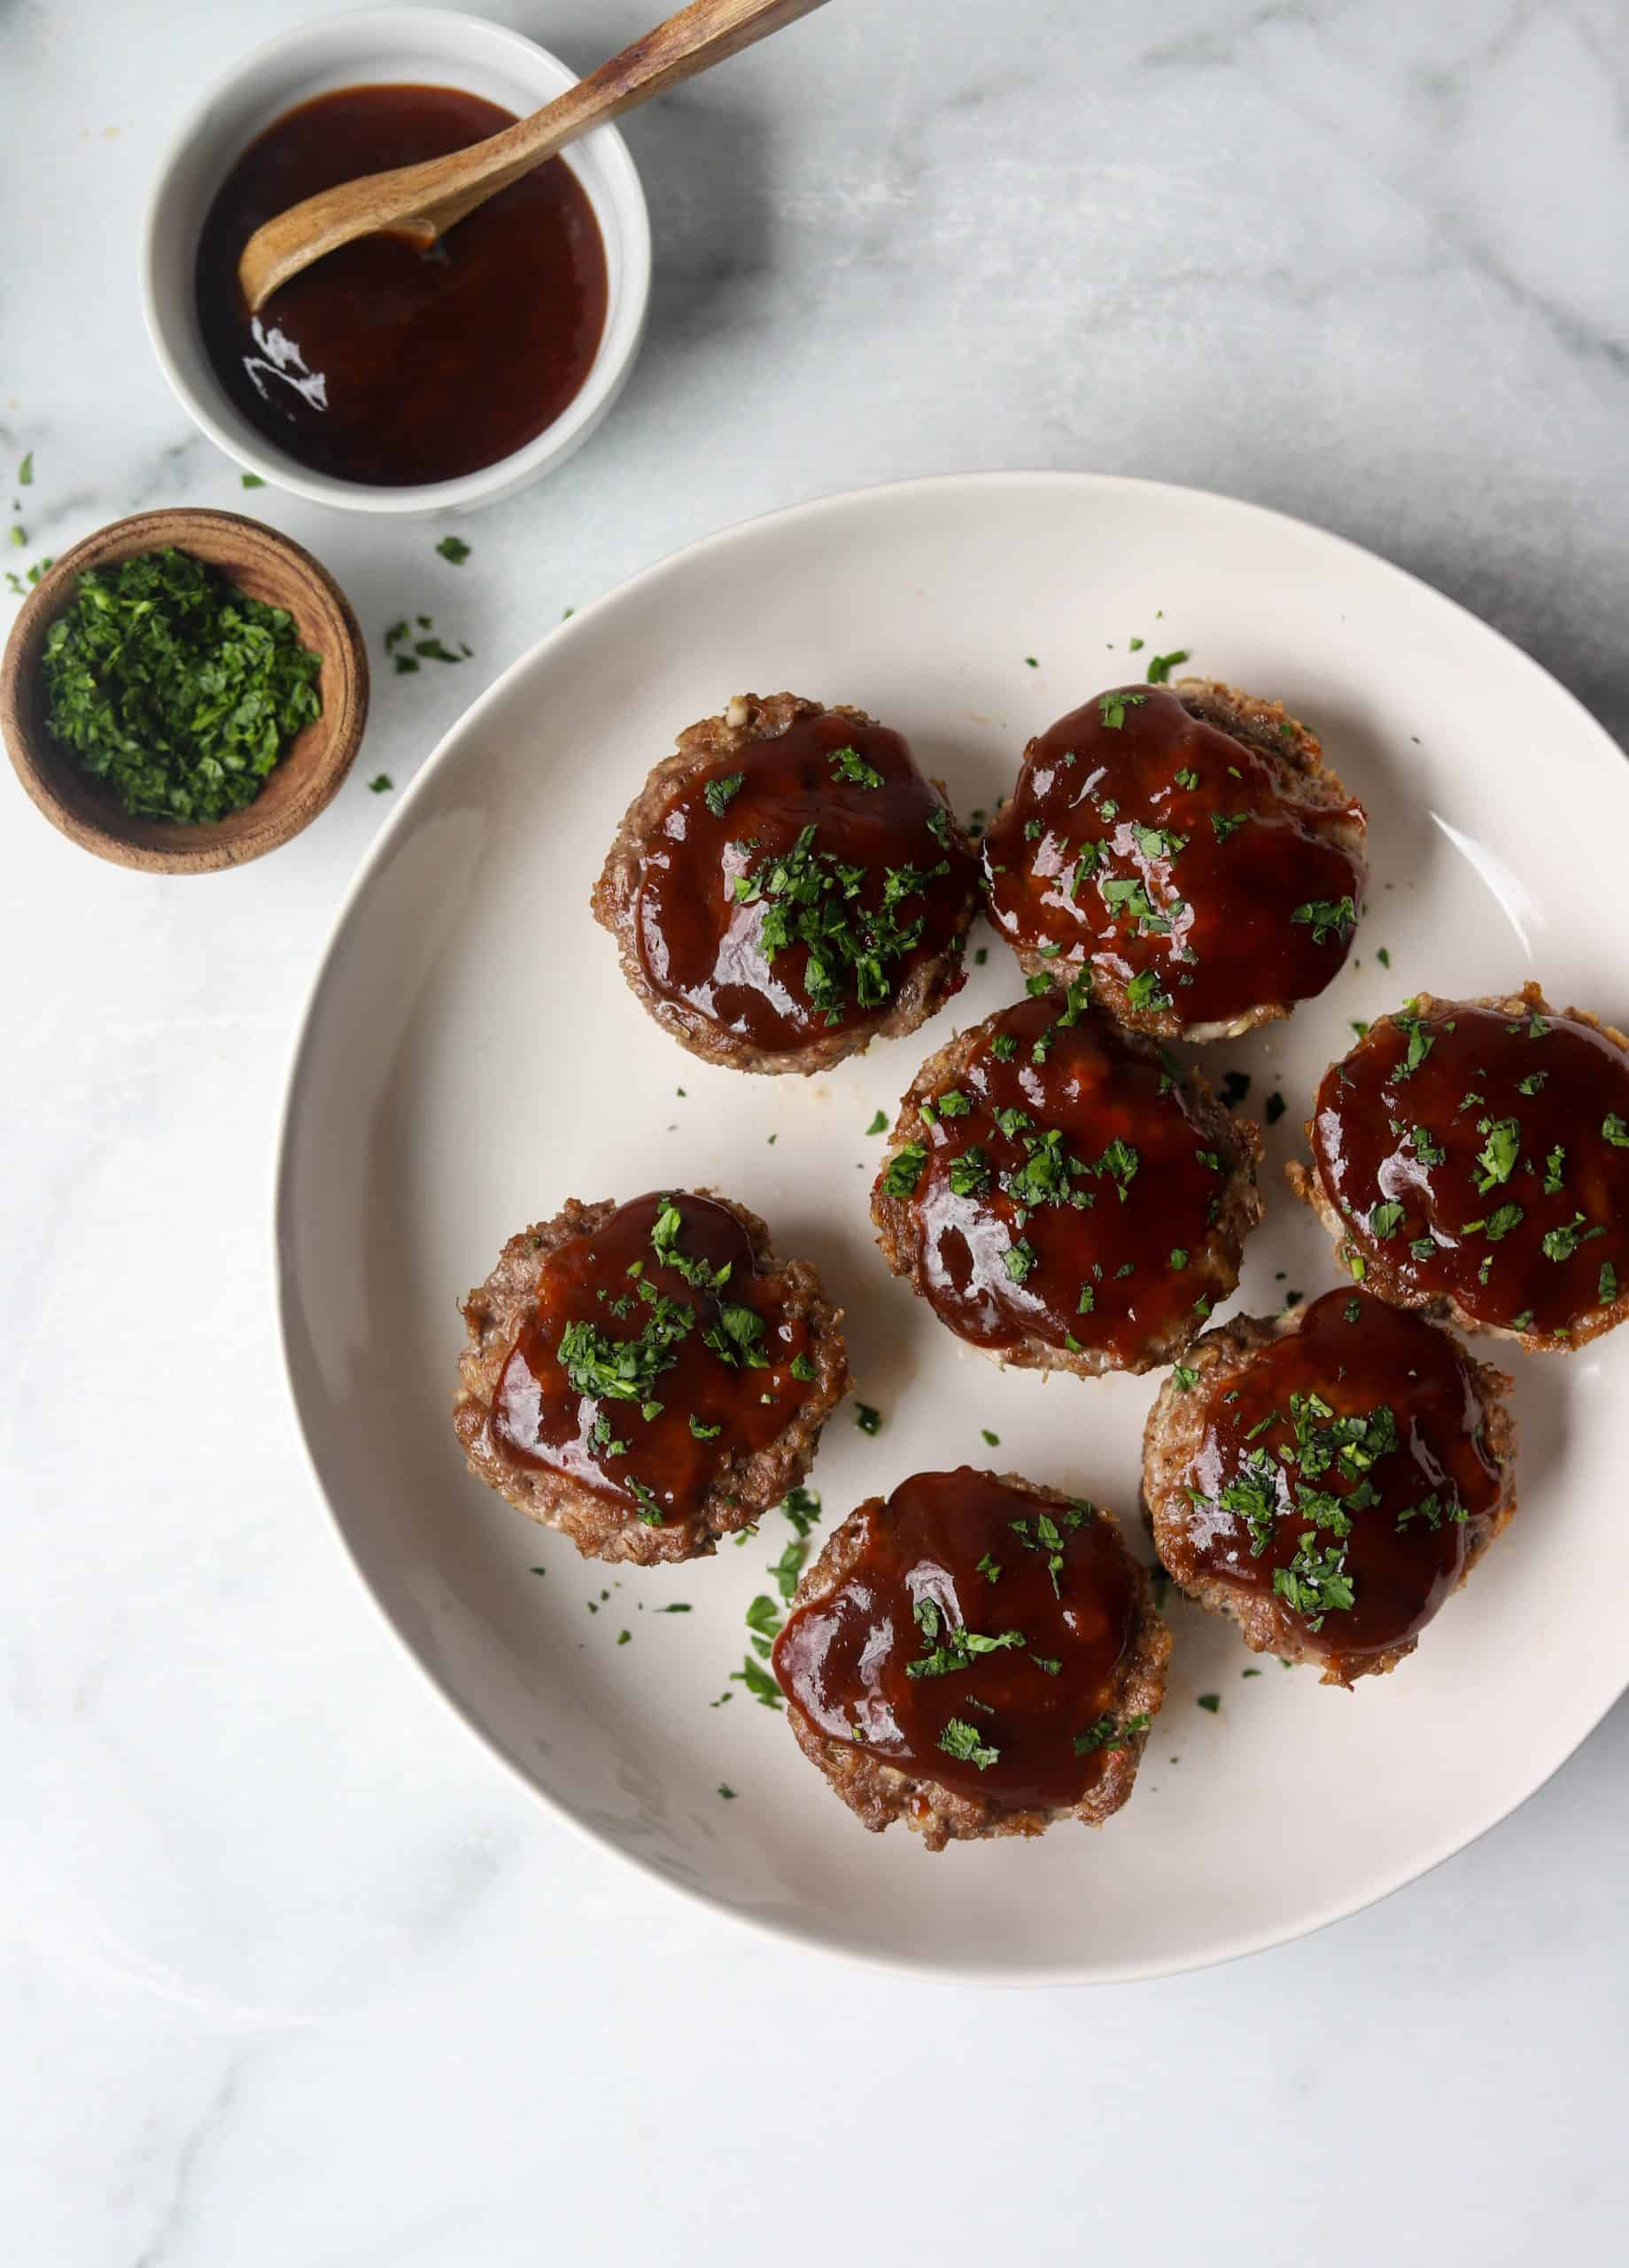 A plate of meatloaf cups with a small bowl of glaze and herbs.